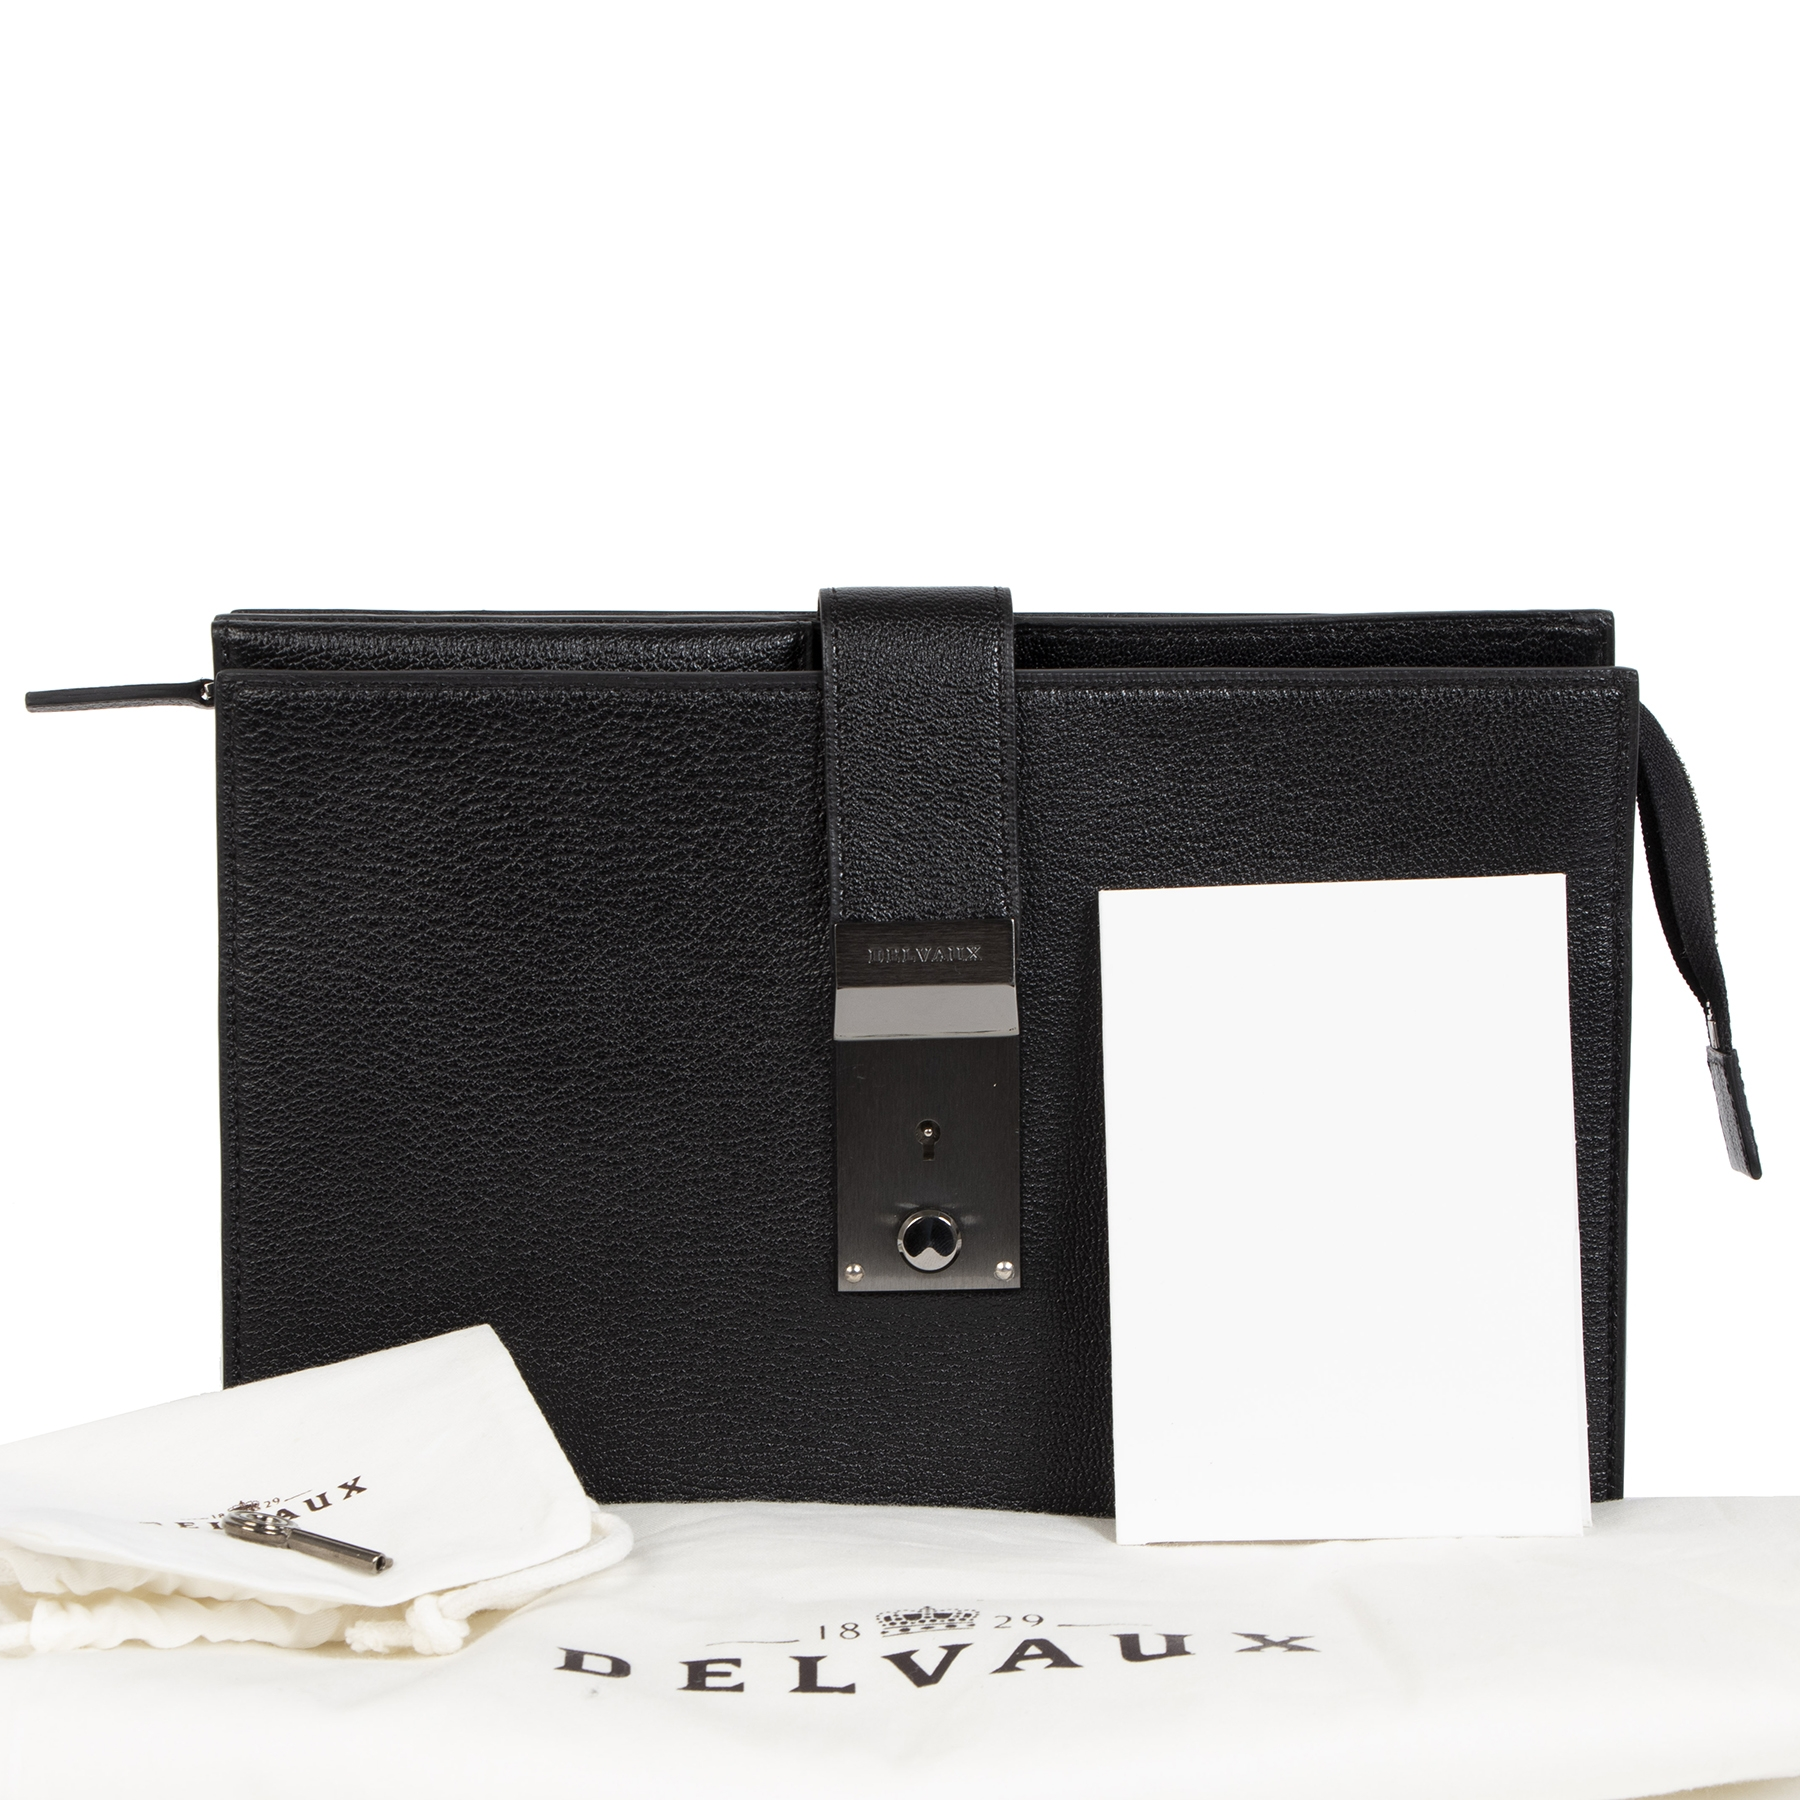 Delvaux Black Leather Pochette